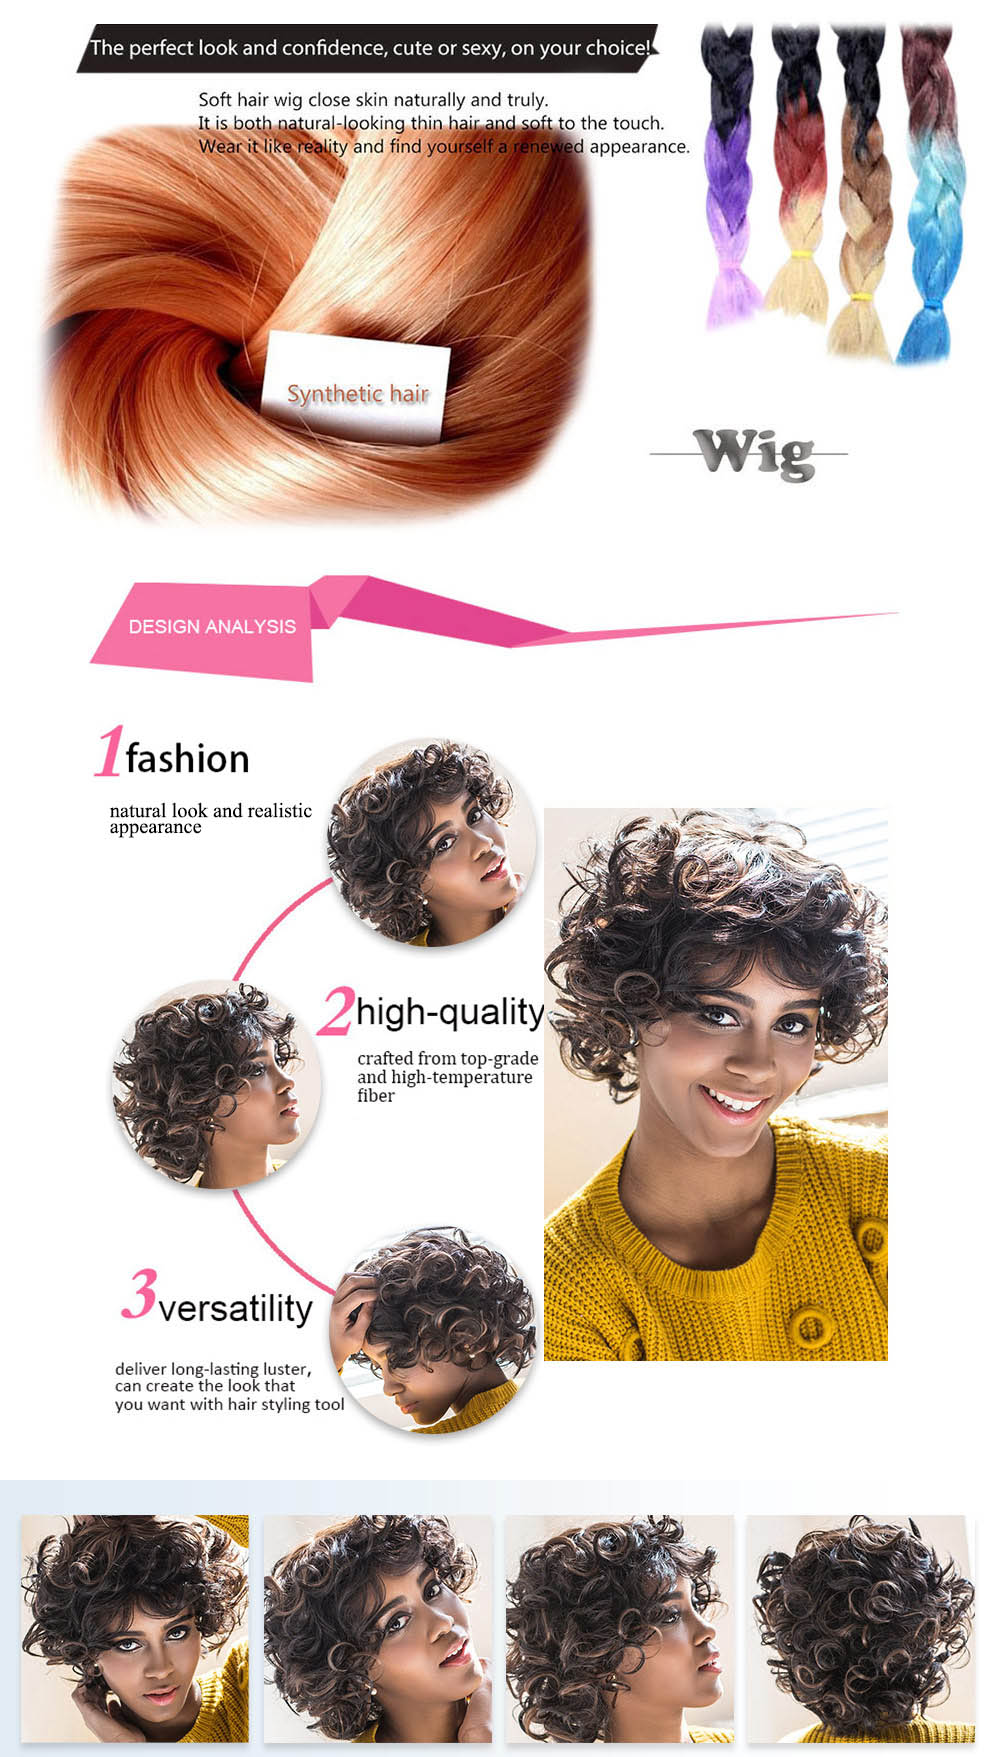 AISIHAIR Shaggy Short Curly Mixed Black Brown Synthetic Wigs for Women